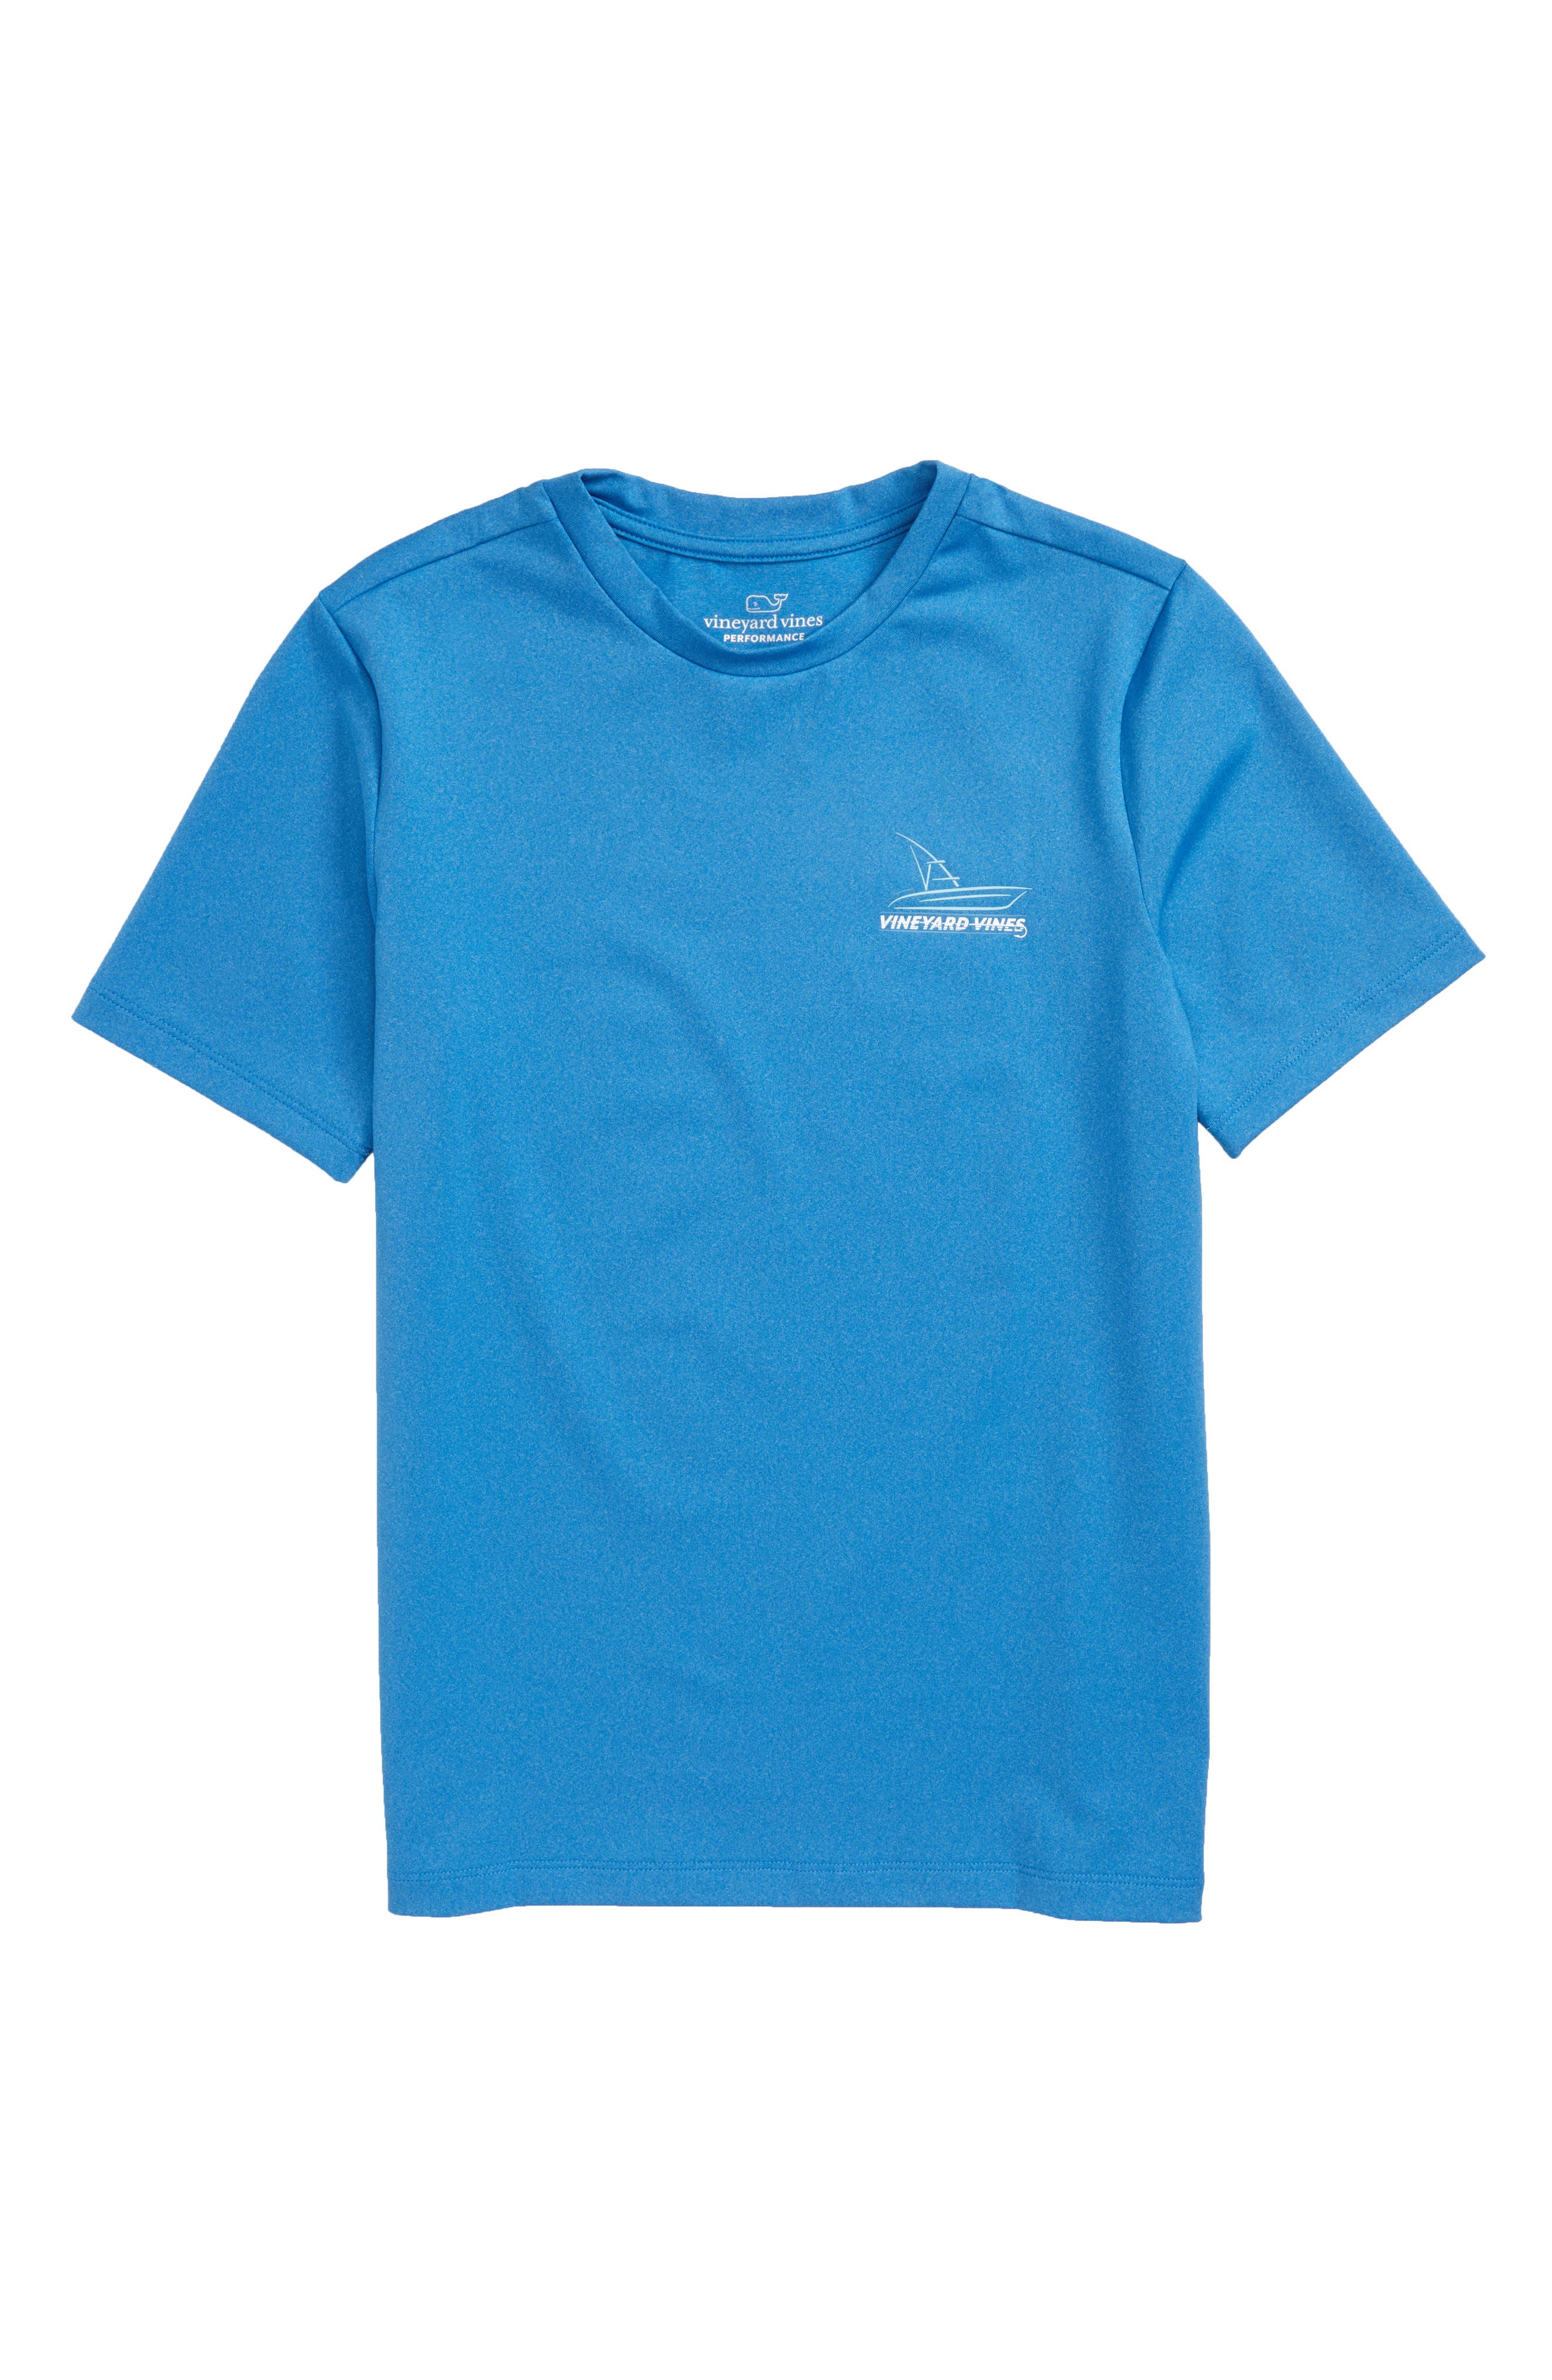 Sportfisher T-Shirt,                             Main thumbnail 1, color,                             400